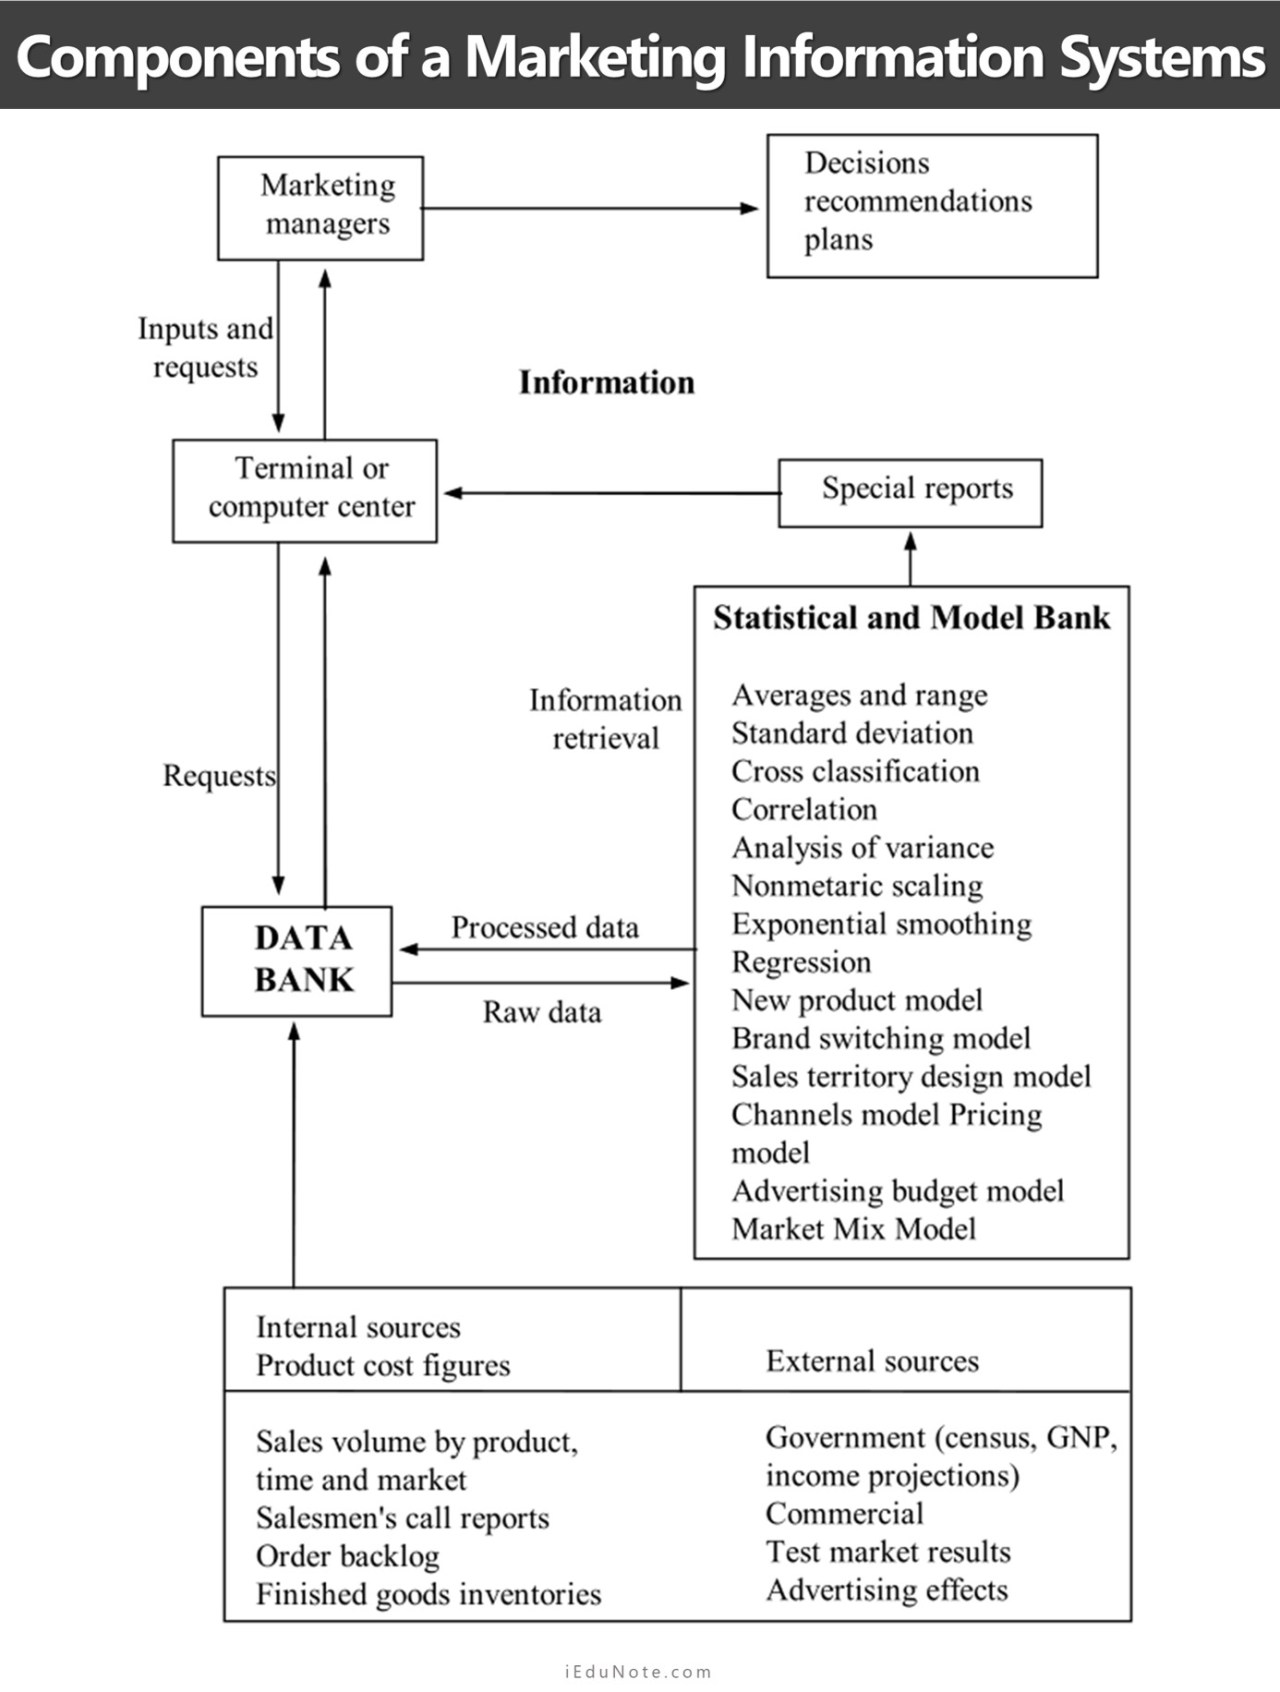 components of marketing information systems